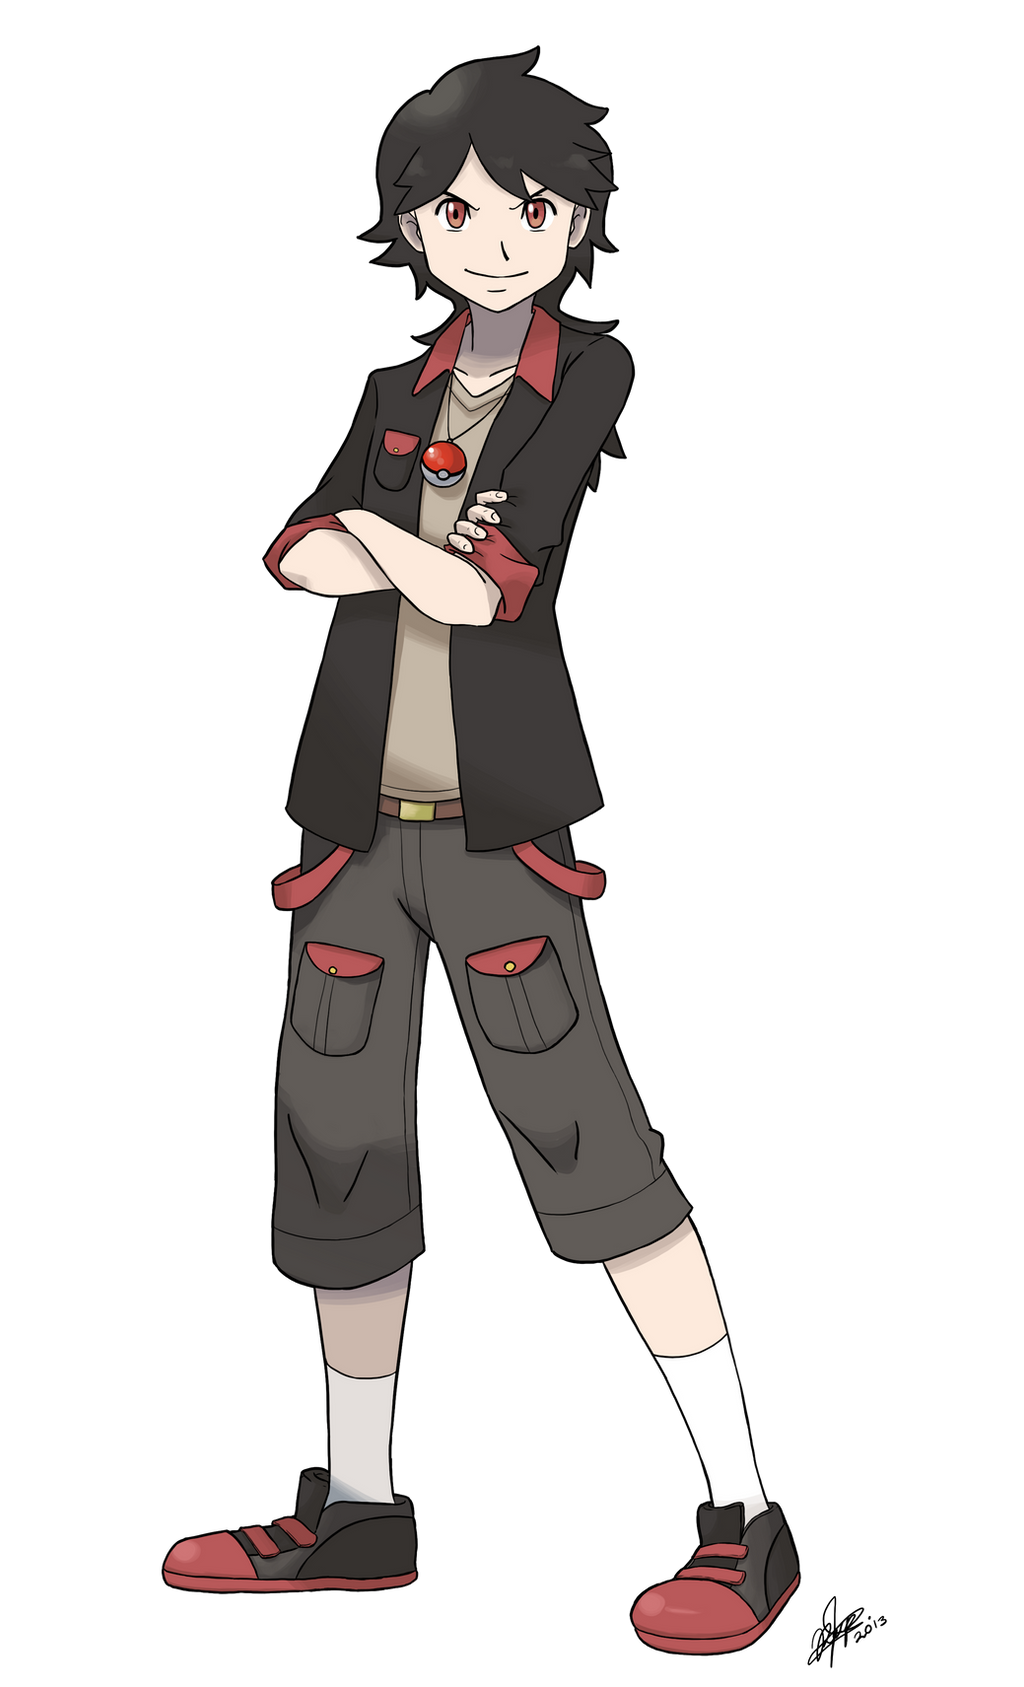 Character Design From The Ground Up : Pokémon full trumpets a hoenn rp t ooc thread the